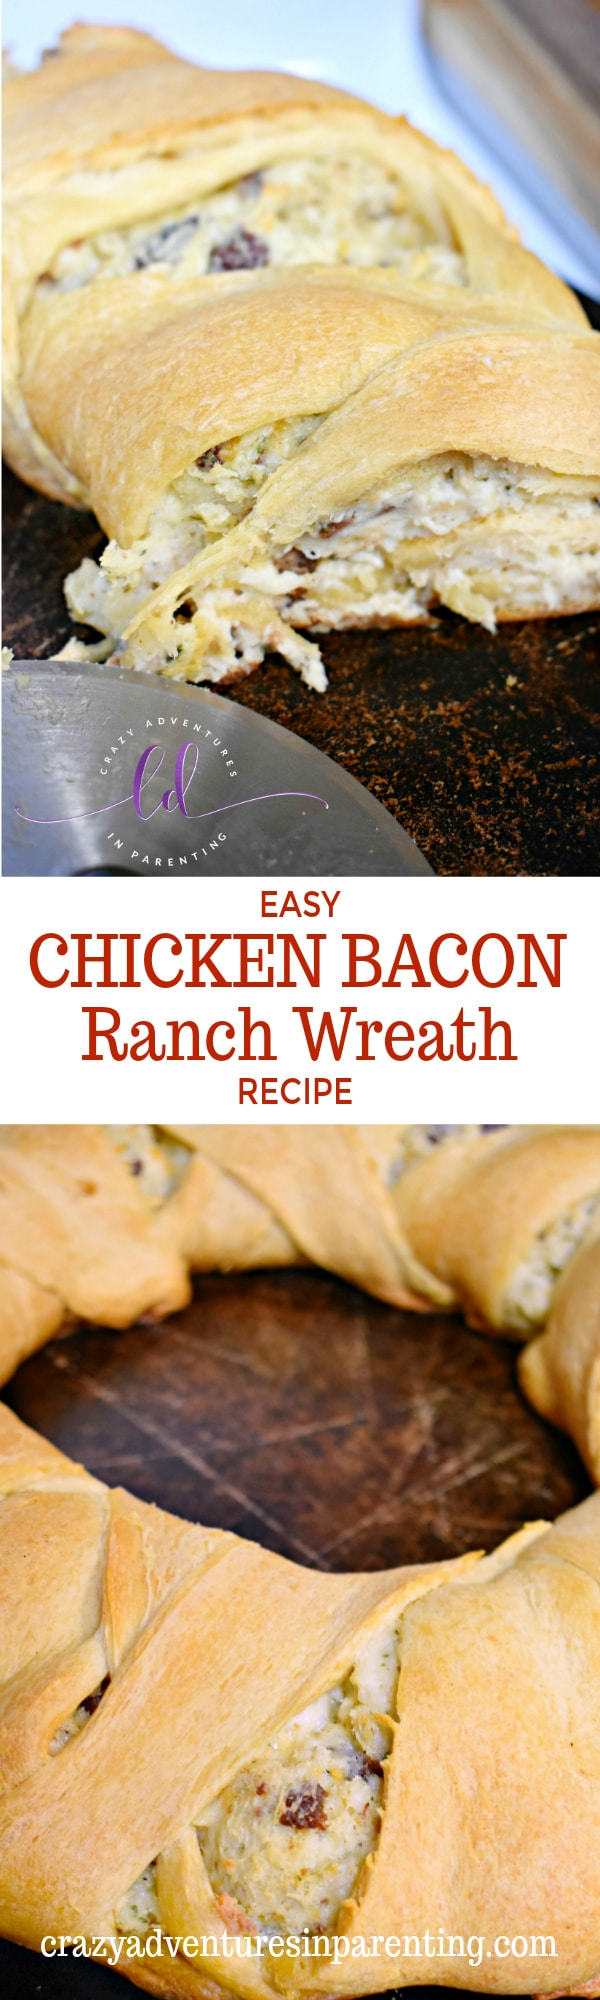 Easy Chicken Bacon Ranch Wreath Recipe